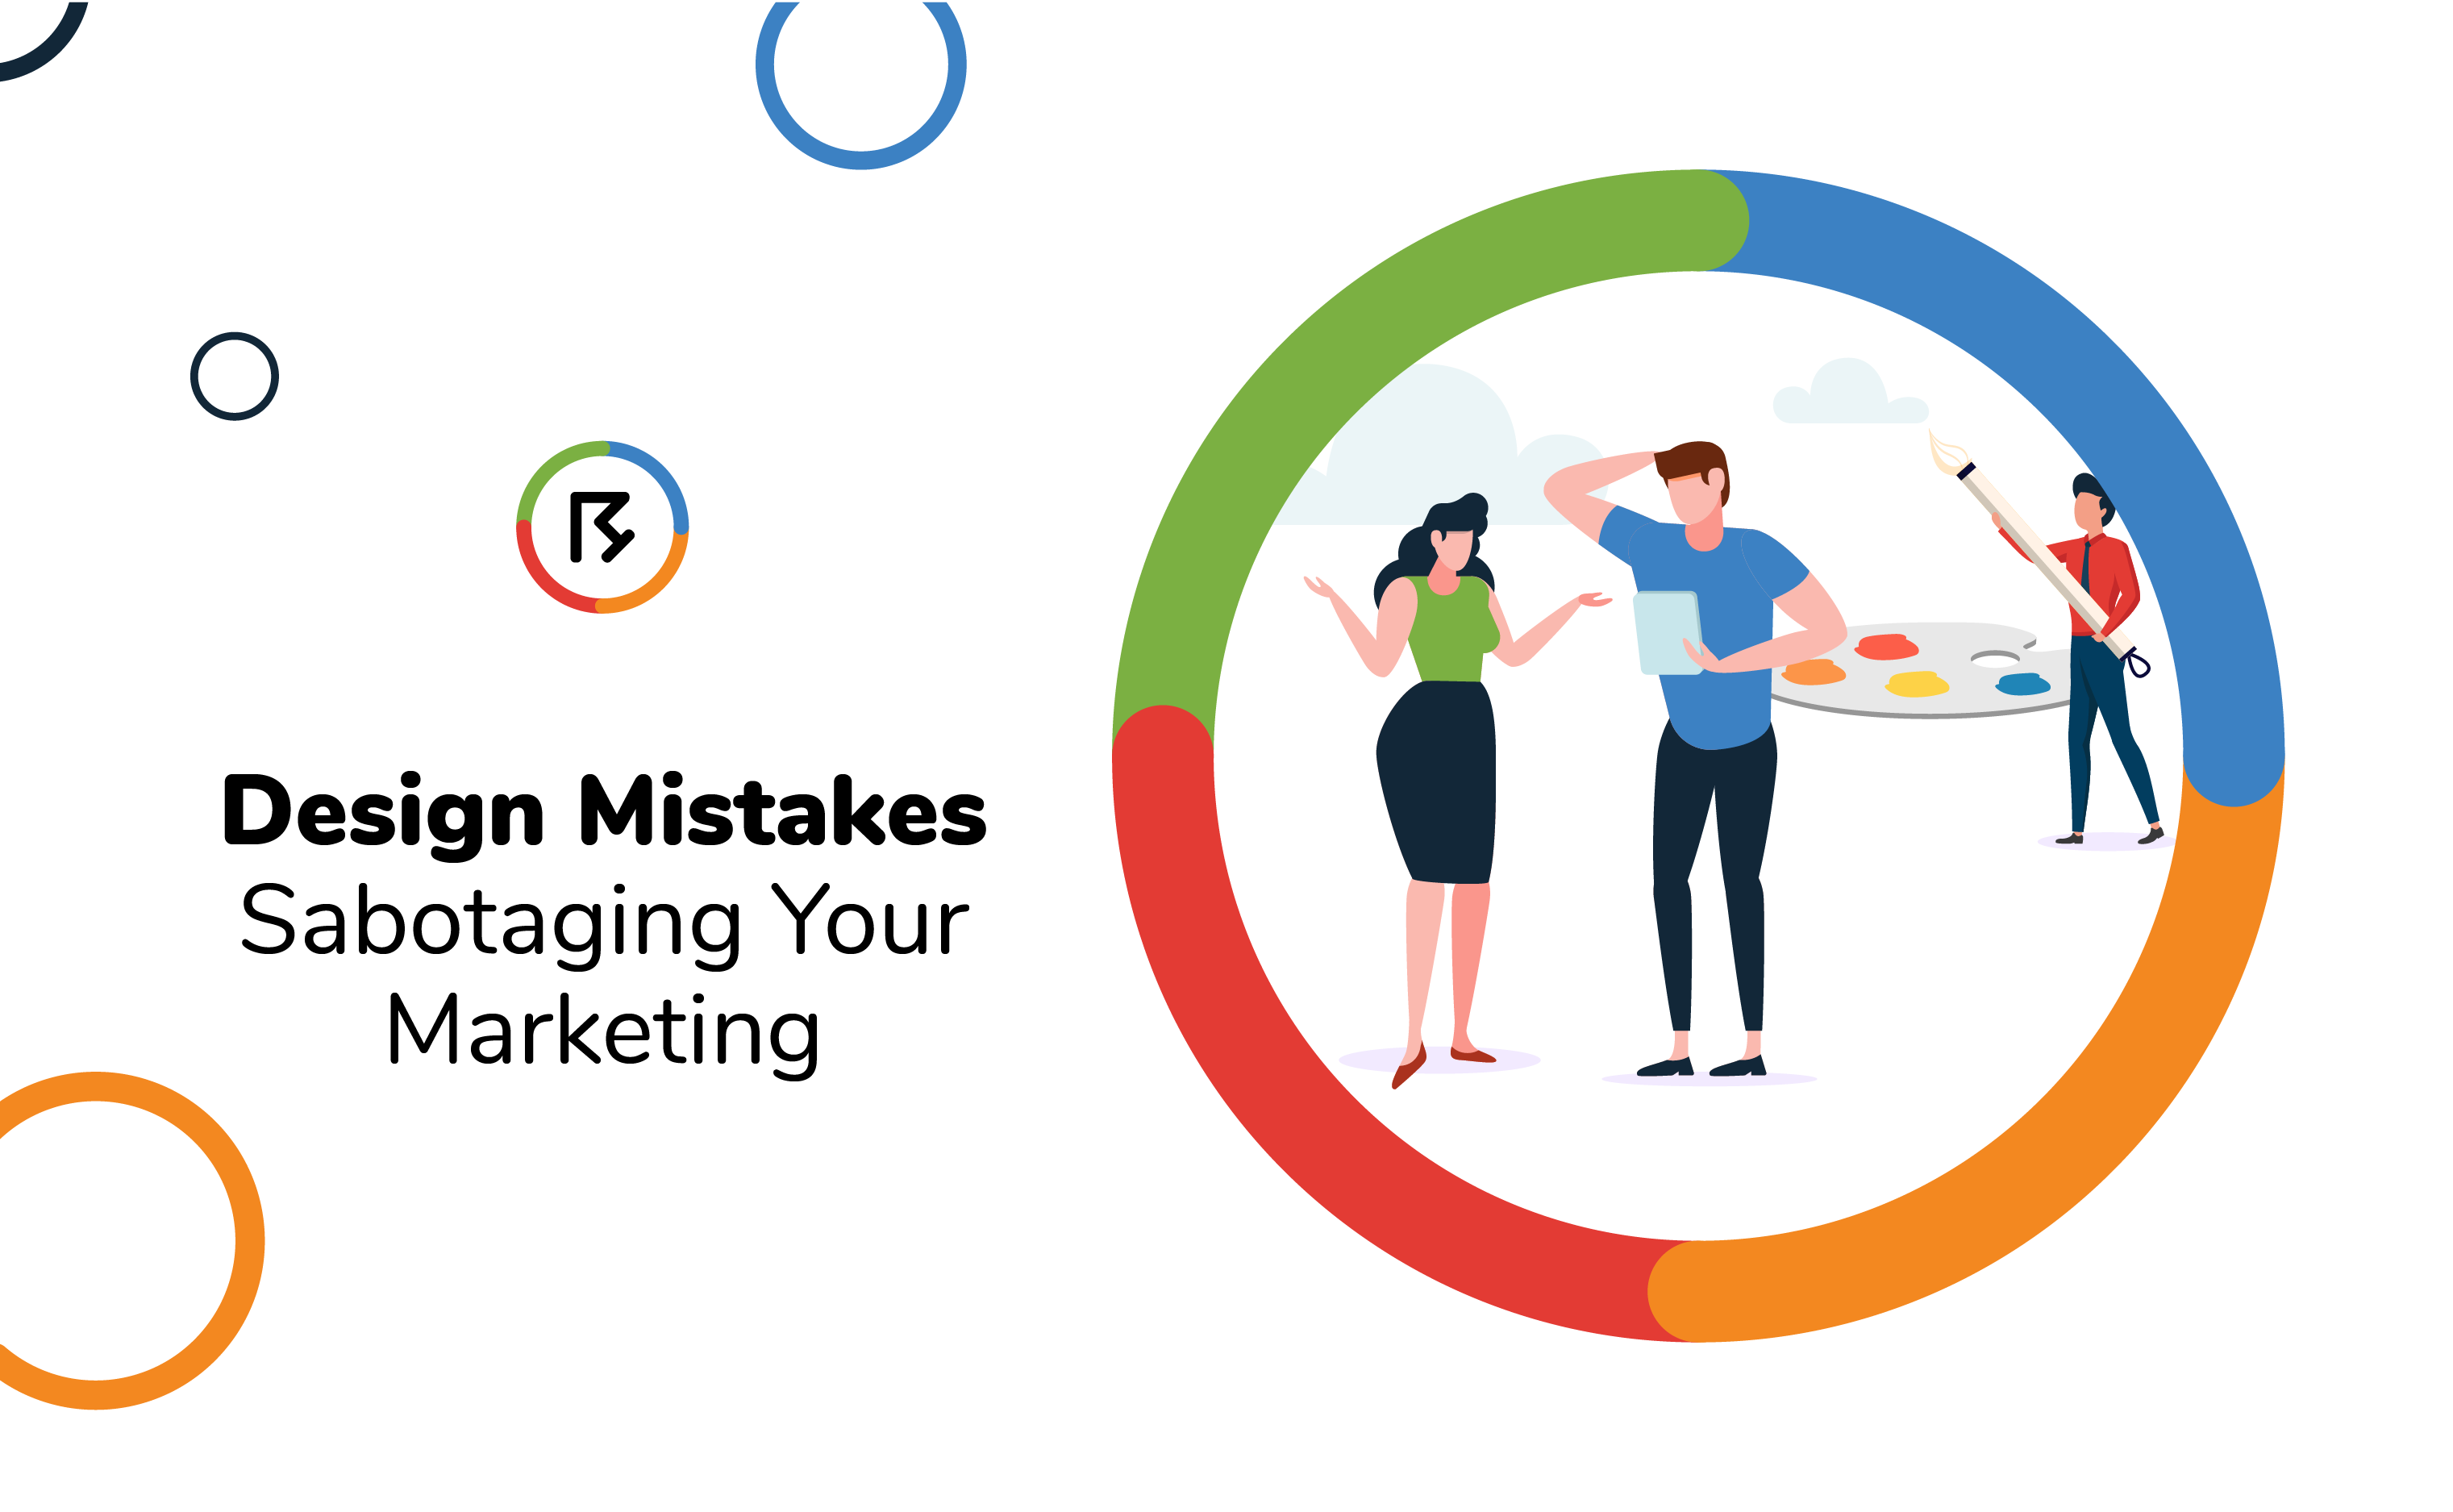 Design Mistakes Sabotaging Your Marketing